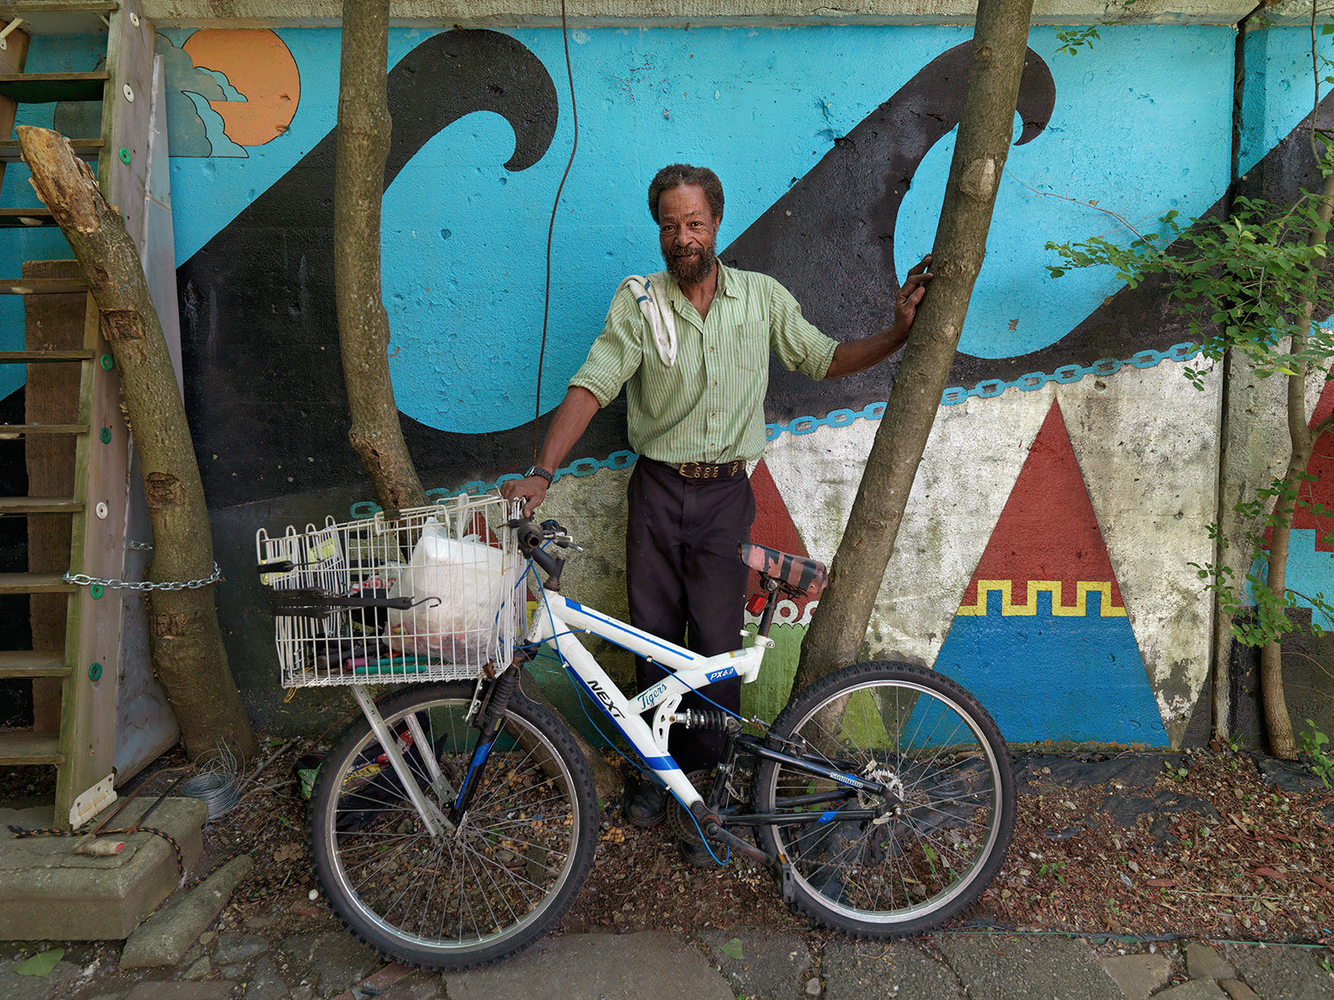 Tom with His New Bike, Southwest Side, Detroit 2015